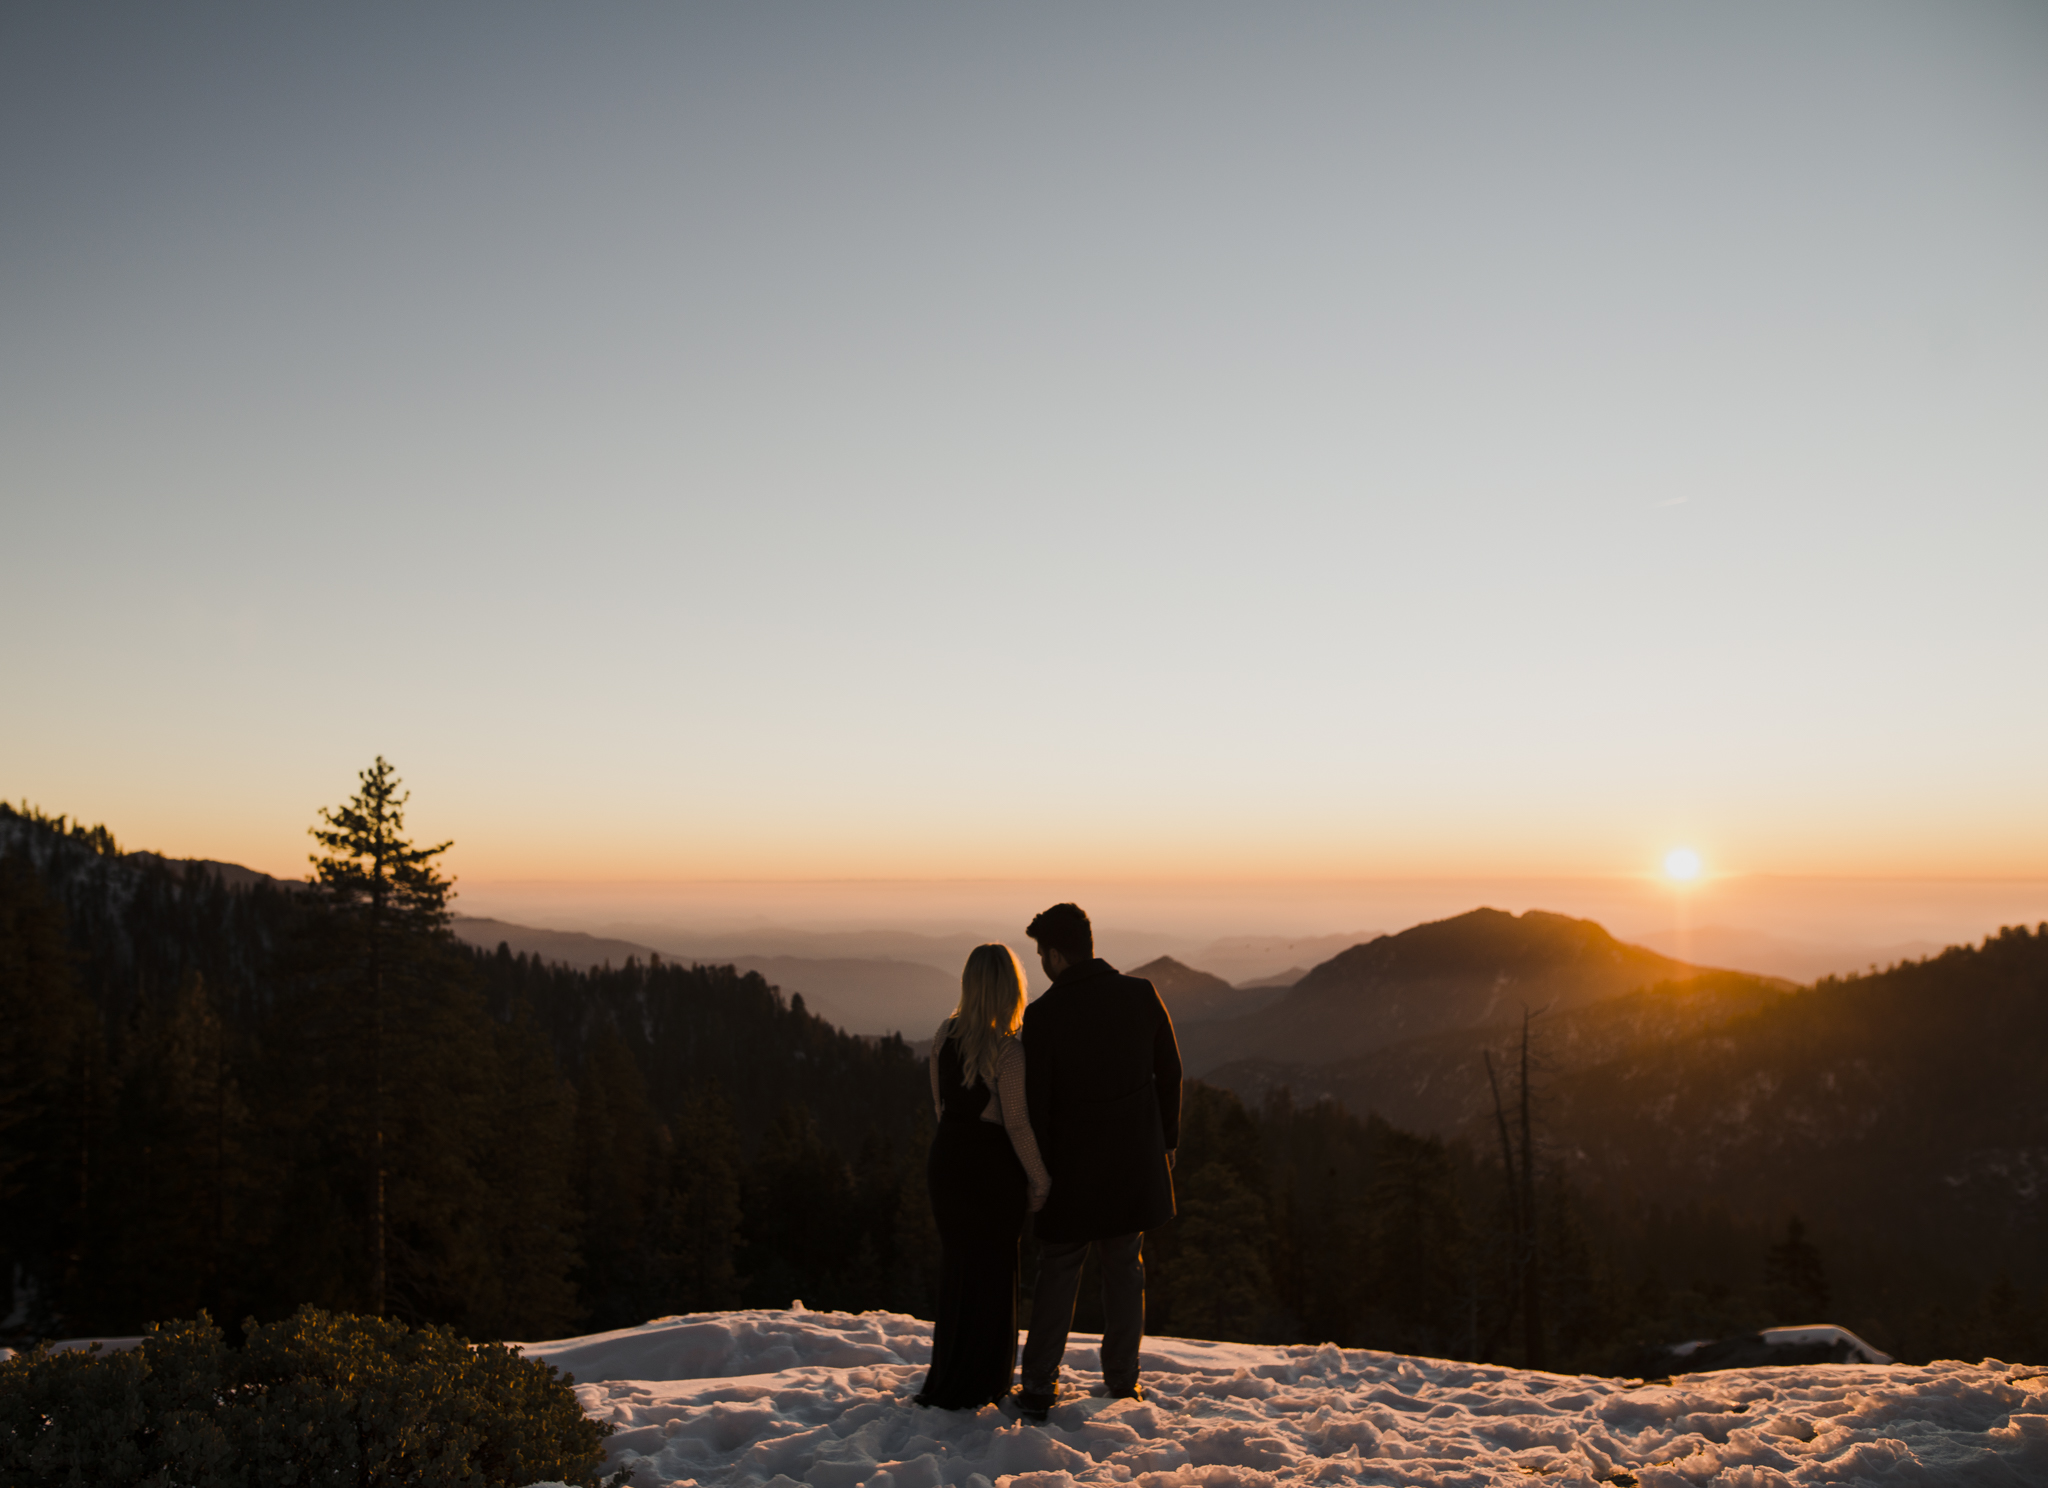 ©Isaiah-&-Taylor-Photography---George-&-Alyssa-Engagement---Sequoia-National-Park,-California-171.jpg